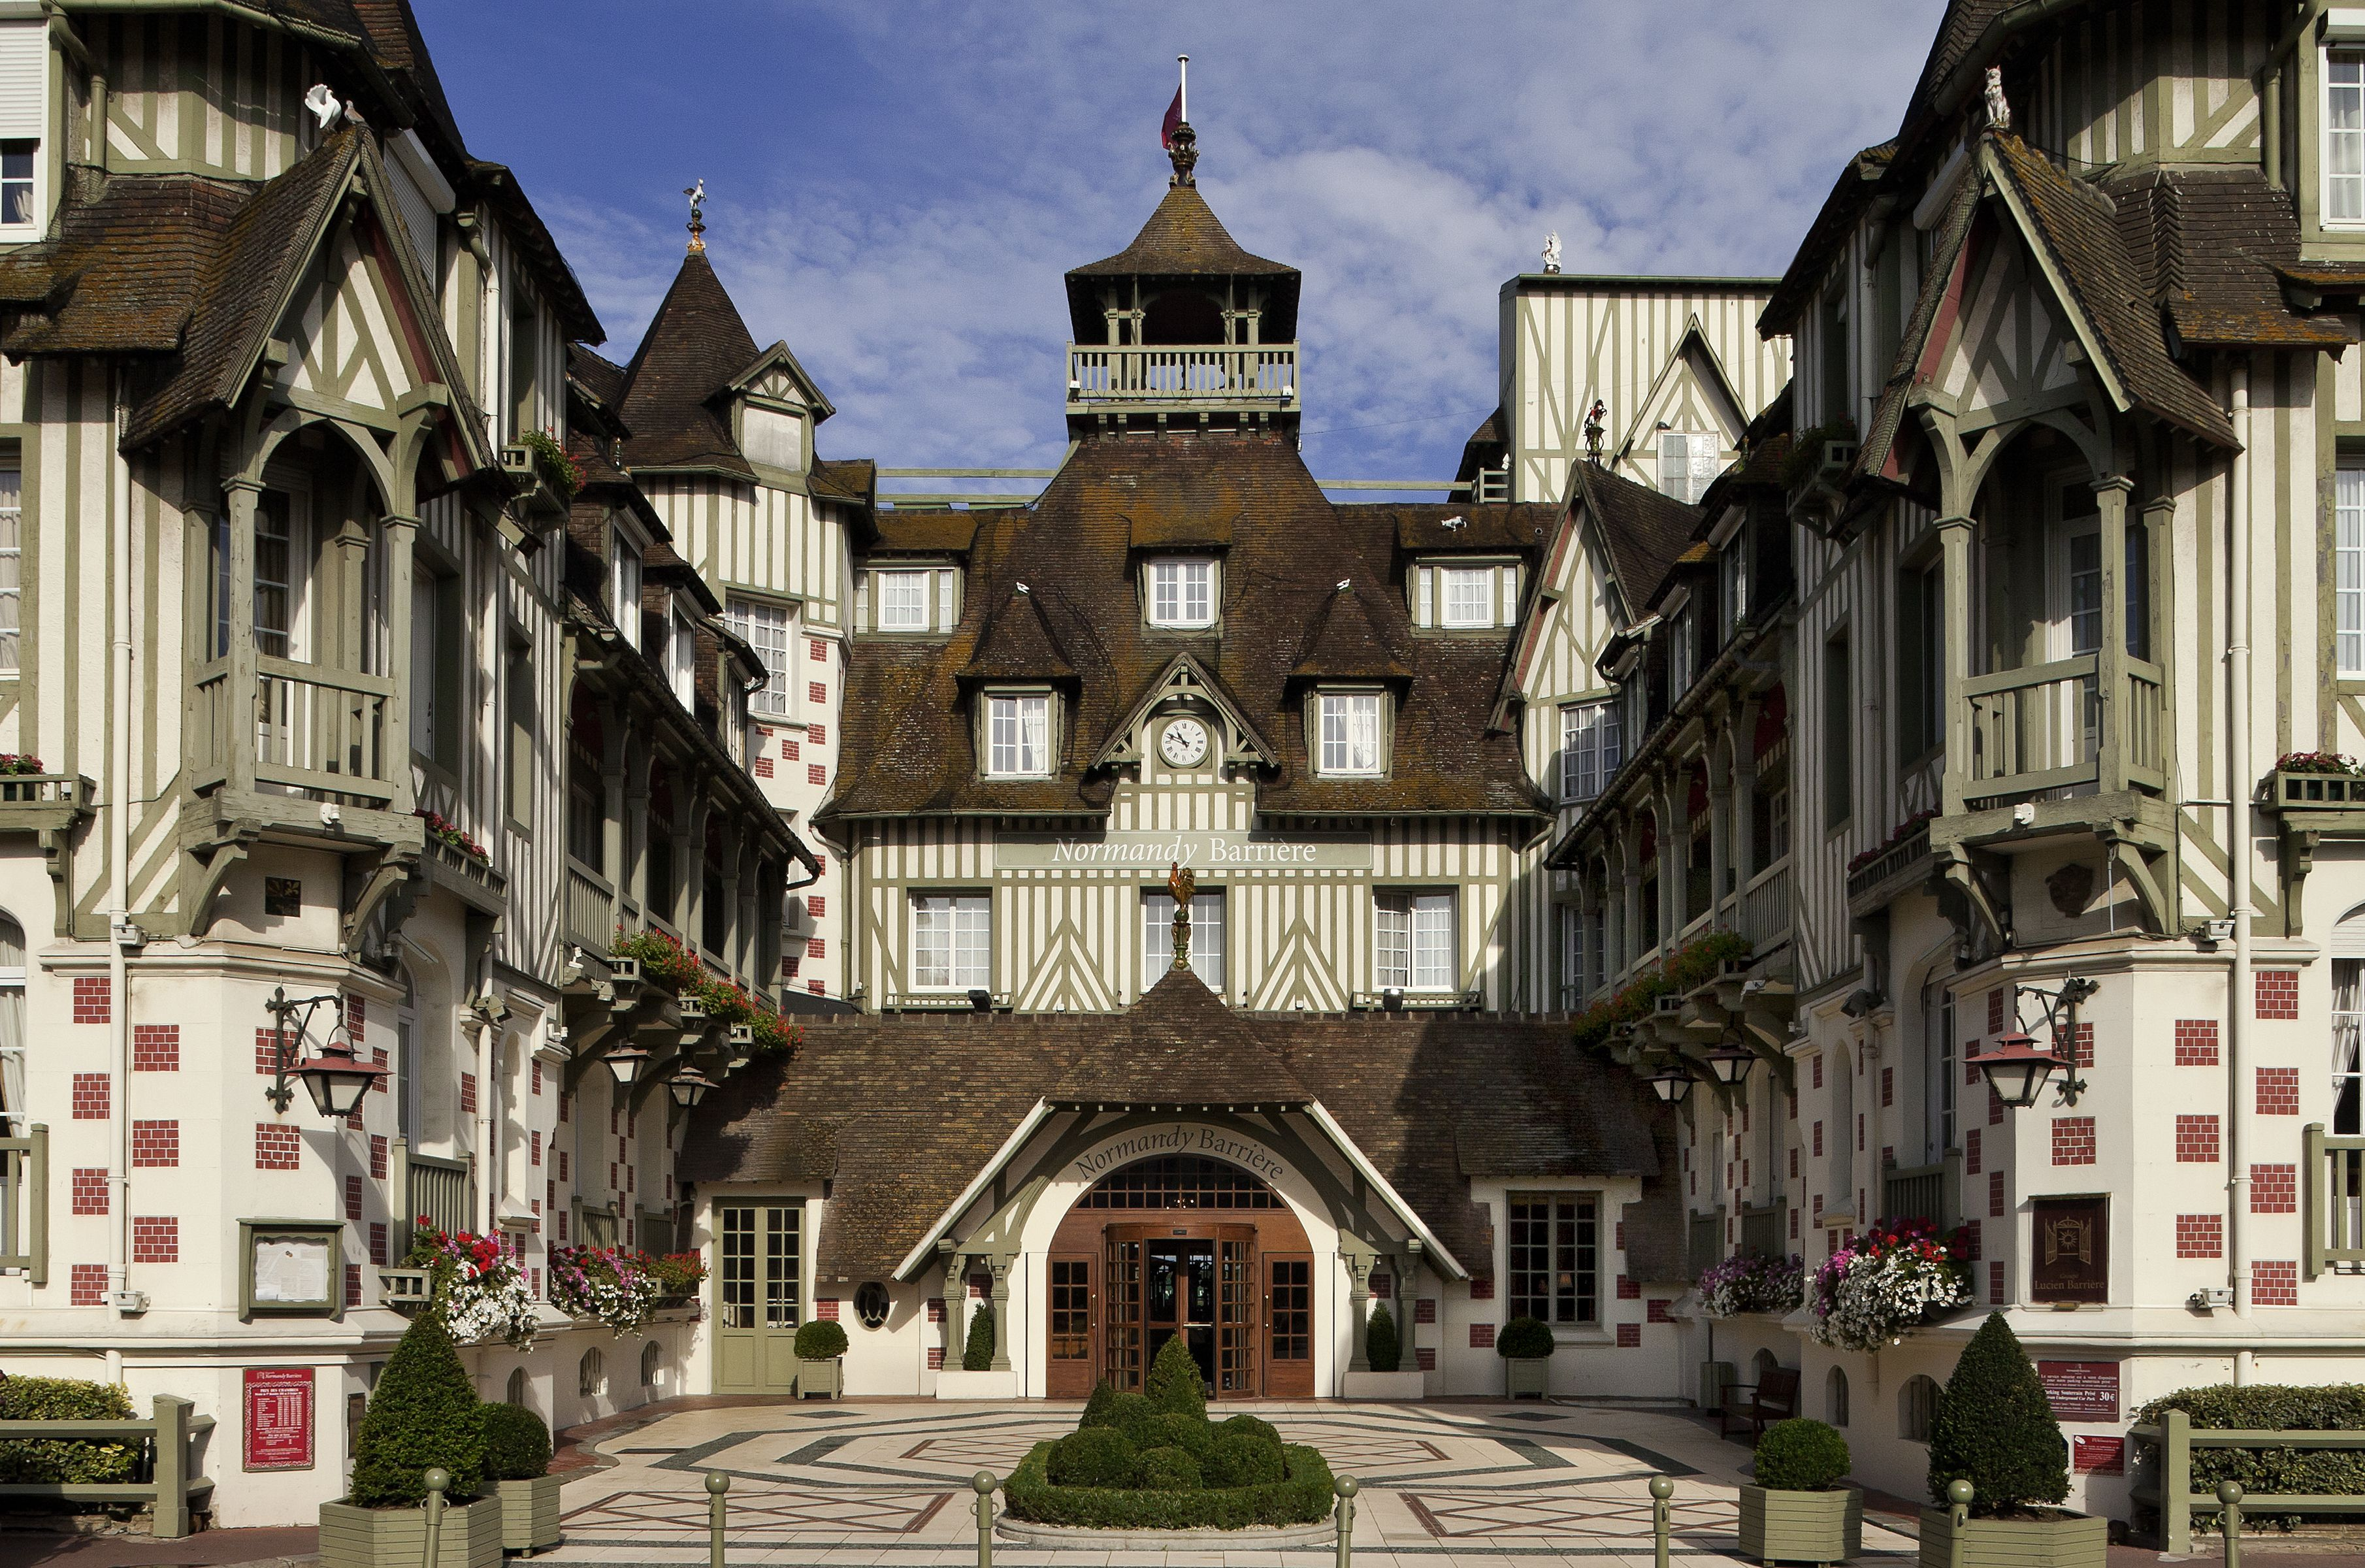 Heading to #France for a #FamilyFriendly #Vacation? Might we suggest the Normandy Barrière in #Deauville? #Kids #Travel